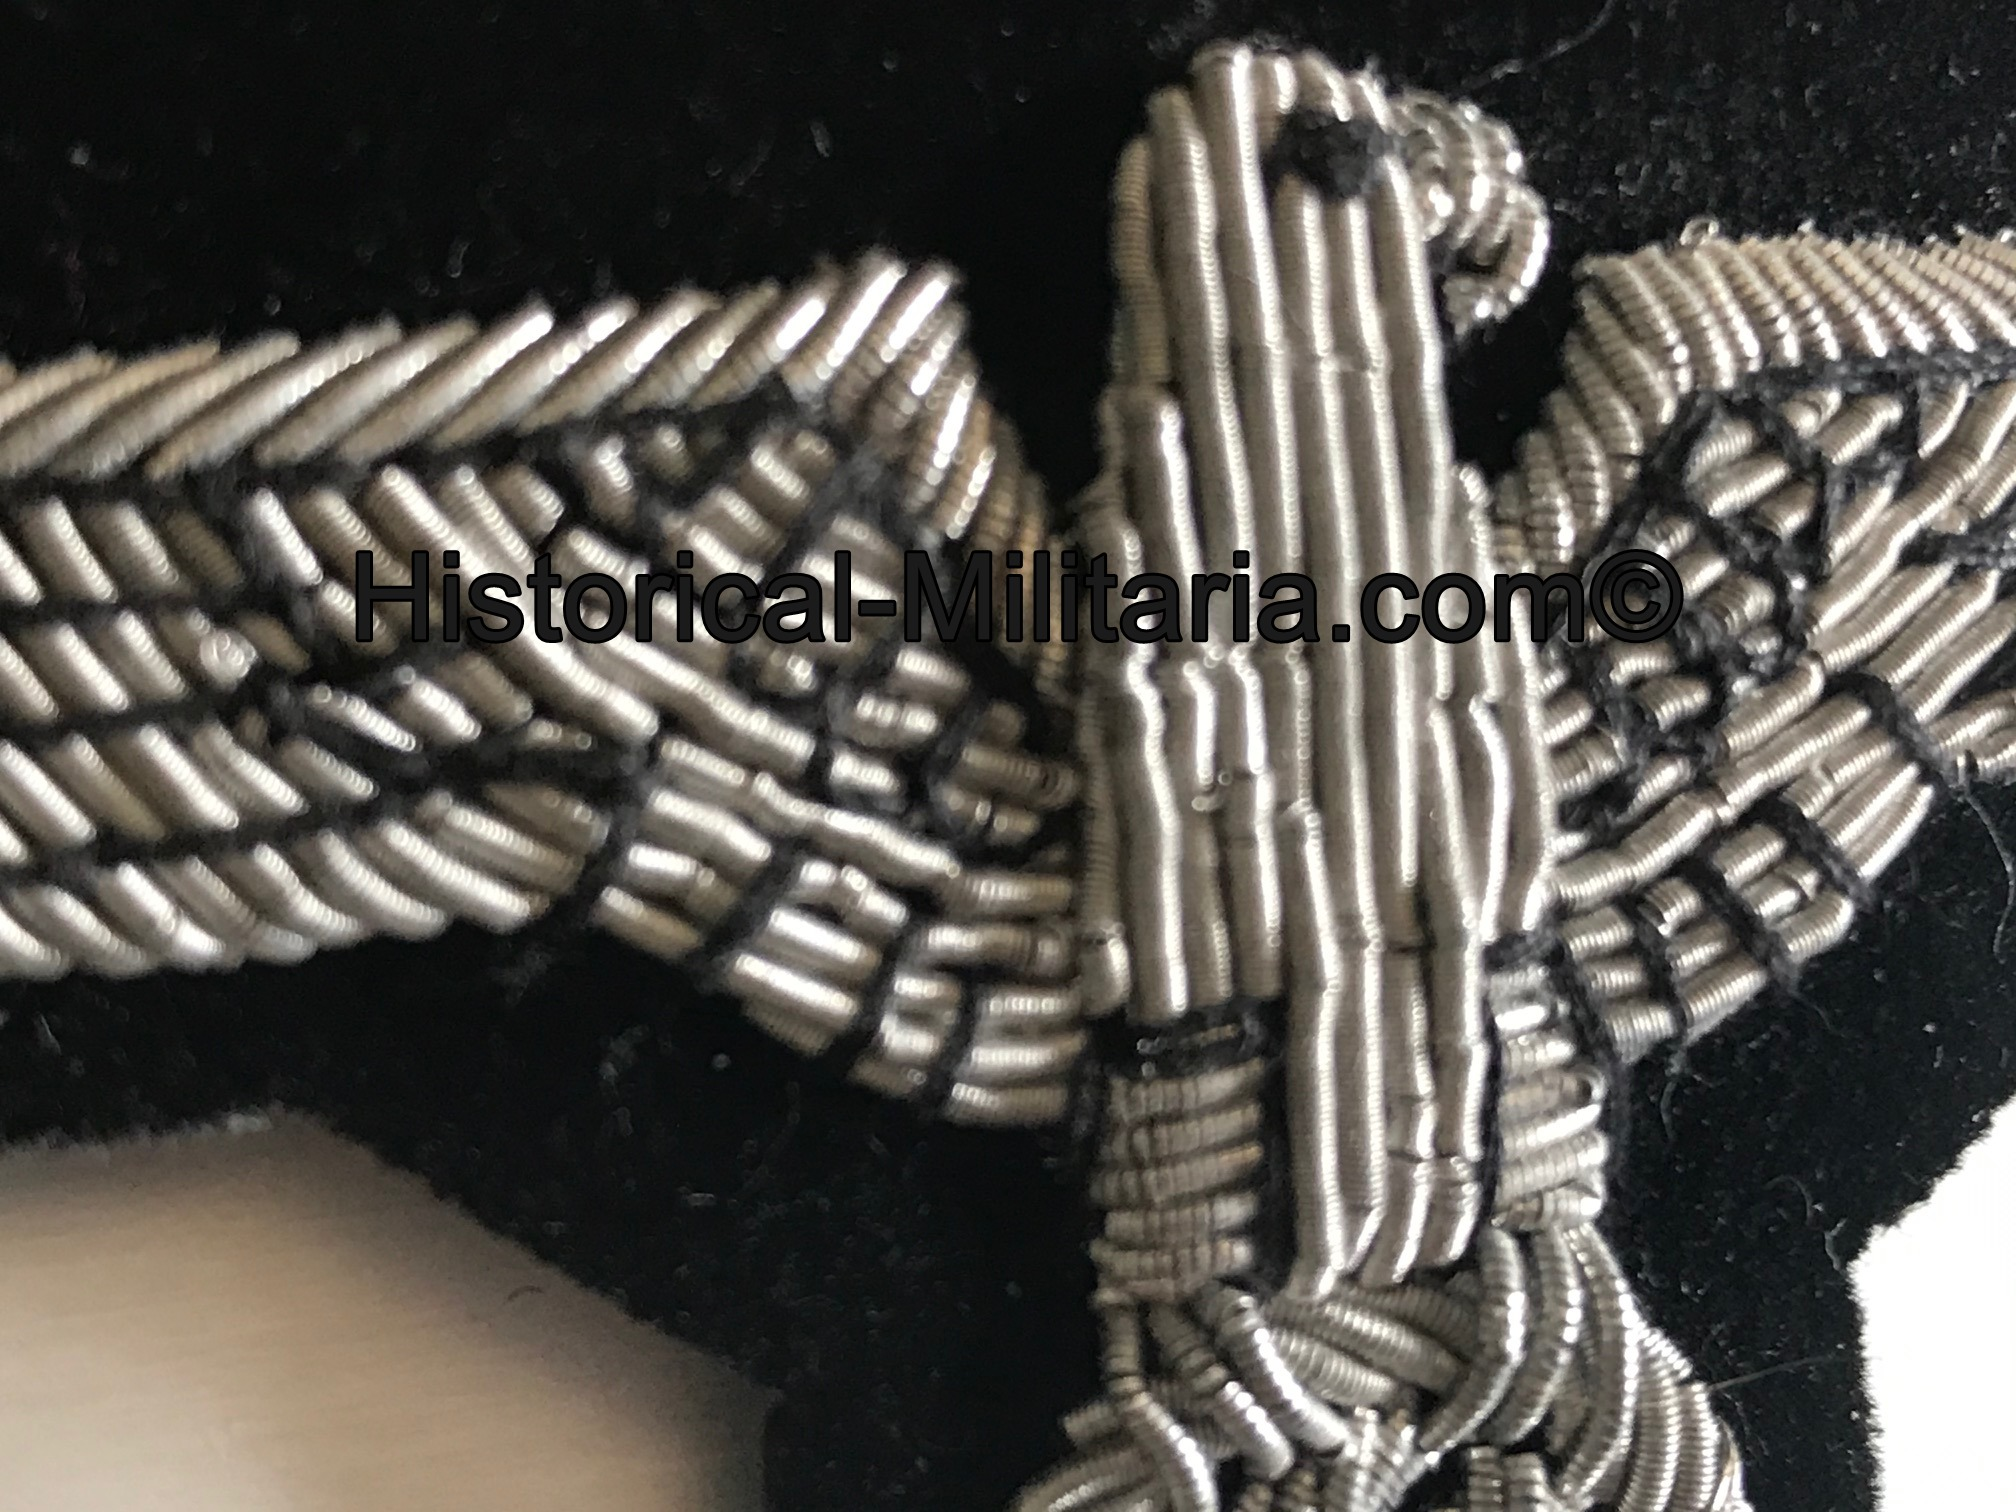 Waffen-SS Officer arm eagle slightly aged on velvet - Offiziersadler Ärmeladler Elite Waffen-SS Panzereinheiten auf Samt gealtert - Aquila da braccio delle Waffen-SS invecchiata